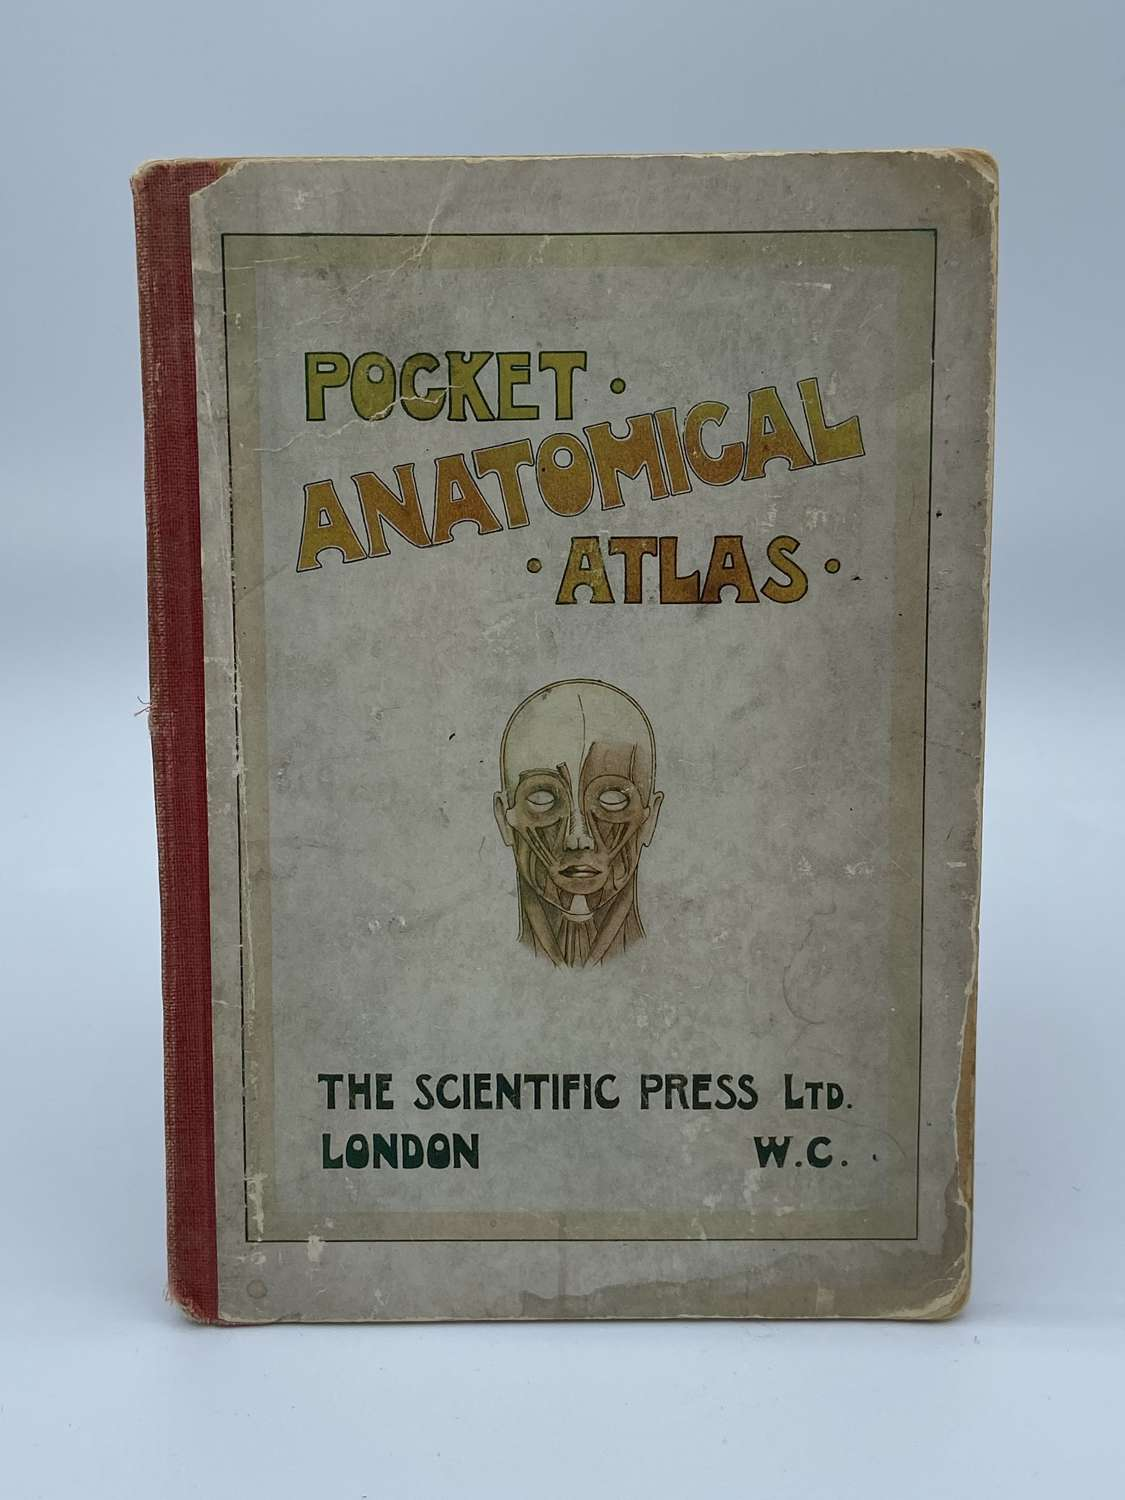 Edwardian 1917 Pocket Anatomical Atlas Of The Human Body